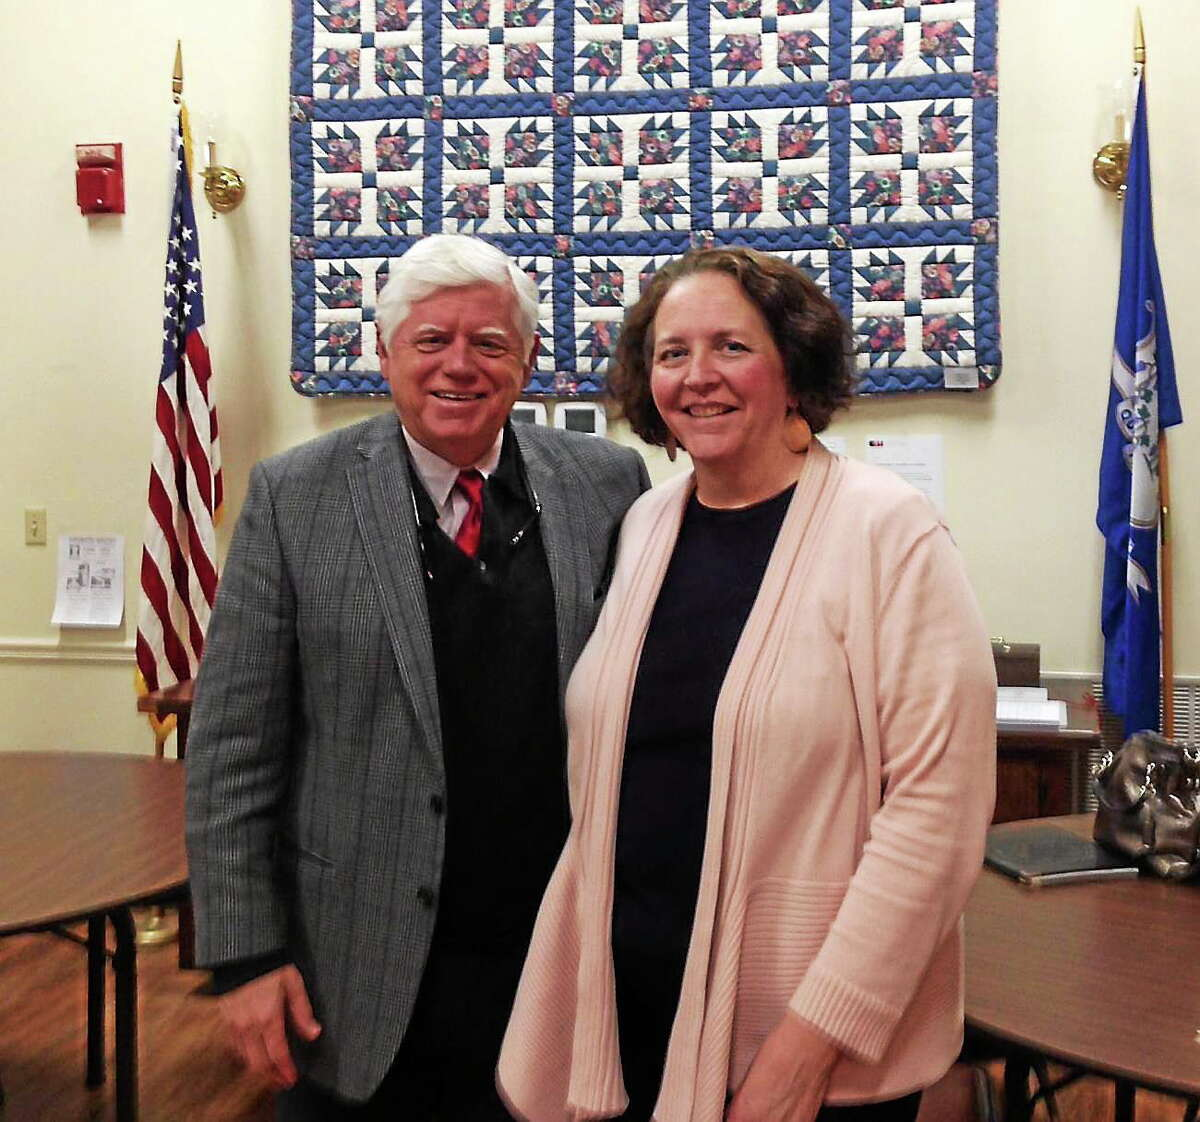 Submitted photo. U.S. Rep. John Larson visited the Portland Senior Center on Wednesday and met with director Mary Flood on Wednesday. Larson also discussed the economy, Medicare, Social Security and current events with the director and others at the senior center.